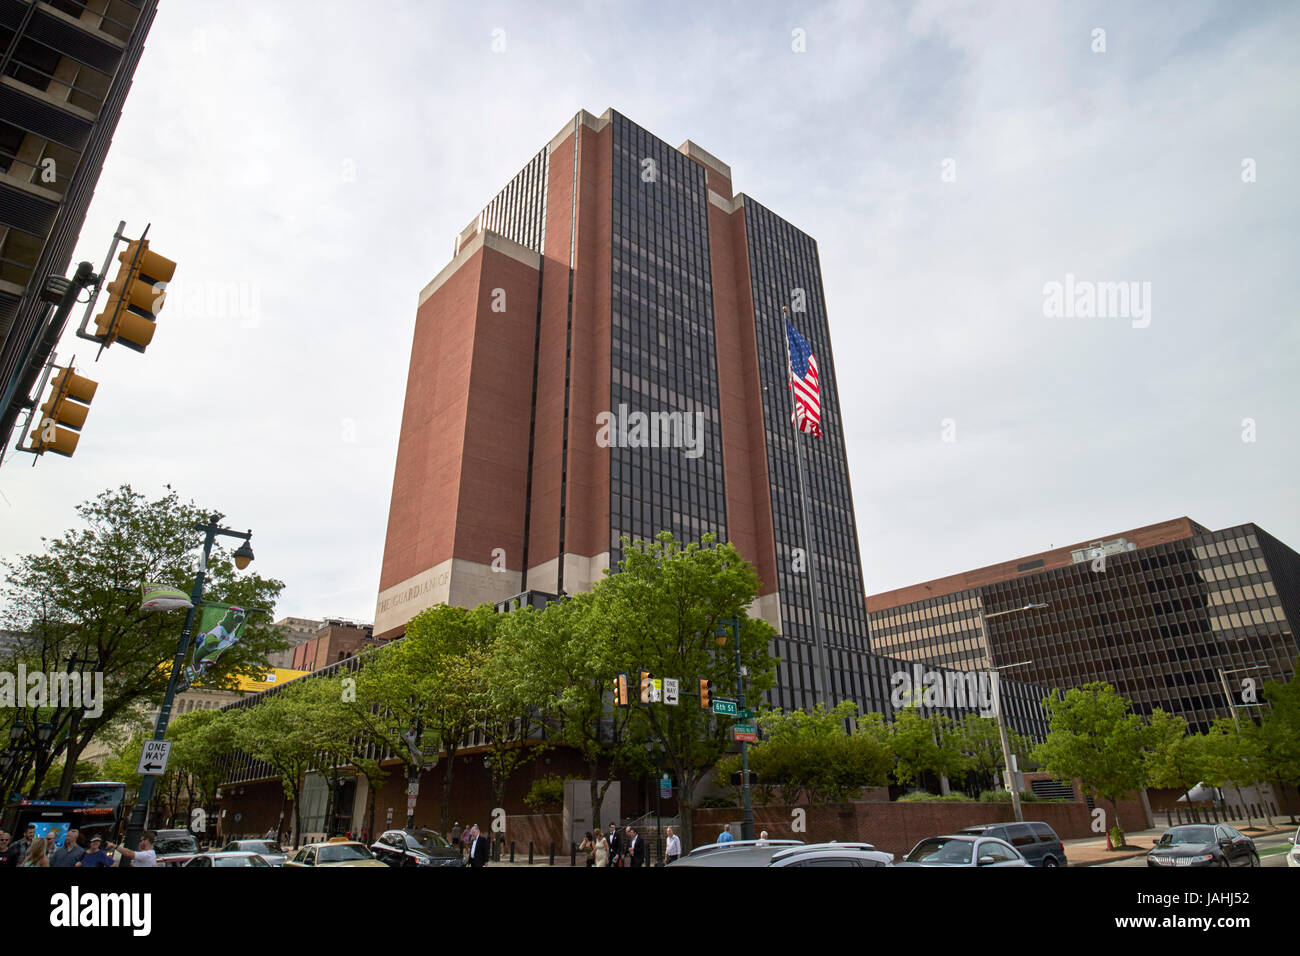 James A Byrne U.S. Courthouse building and william j green jr building at right Philadelphia USA - Stock Image